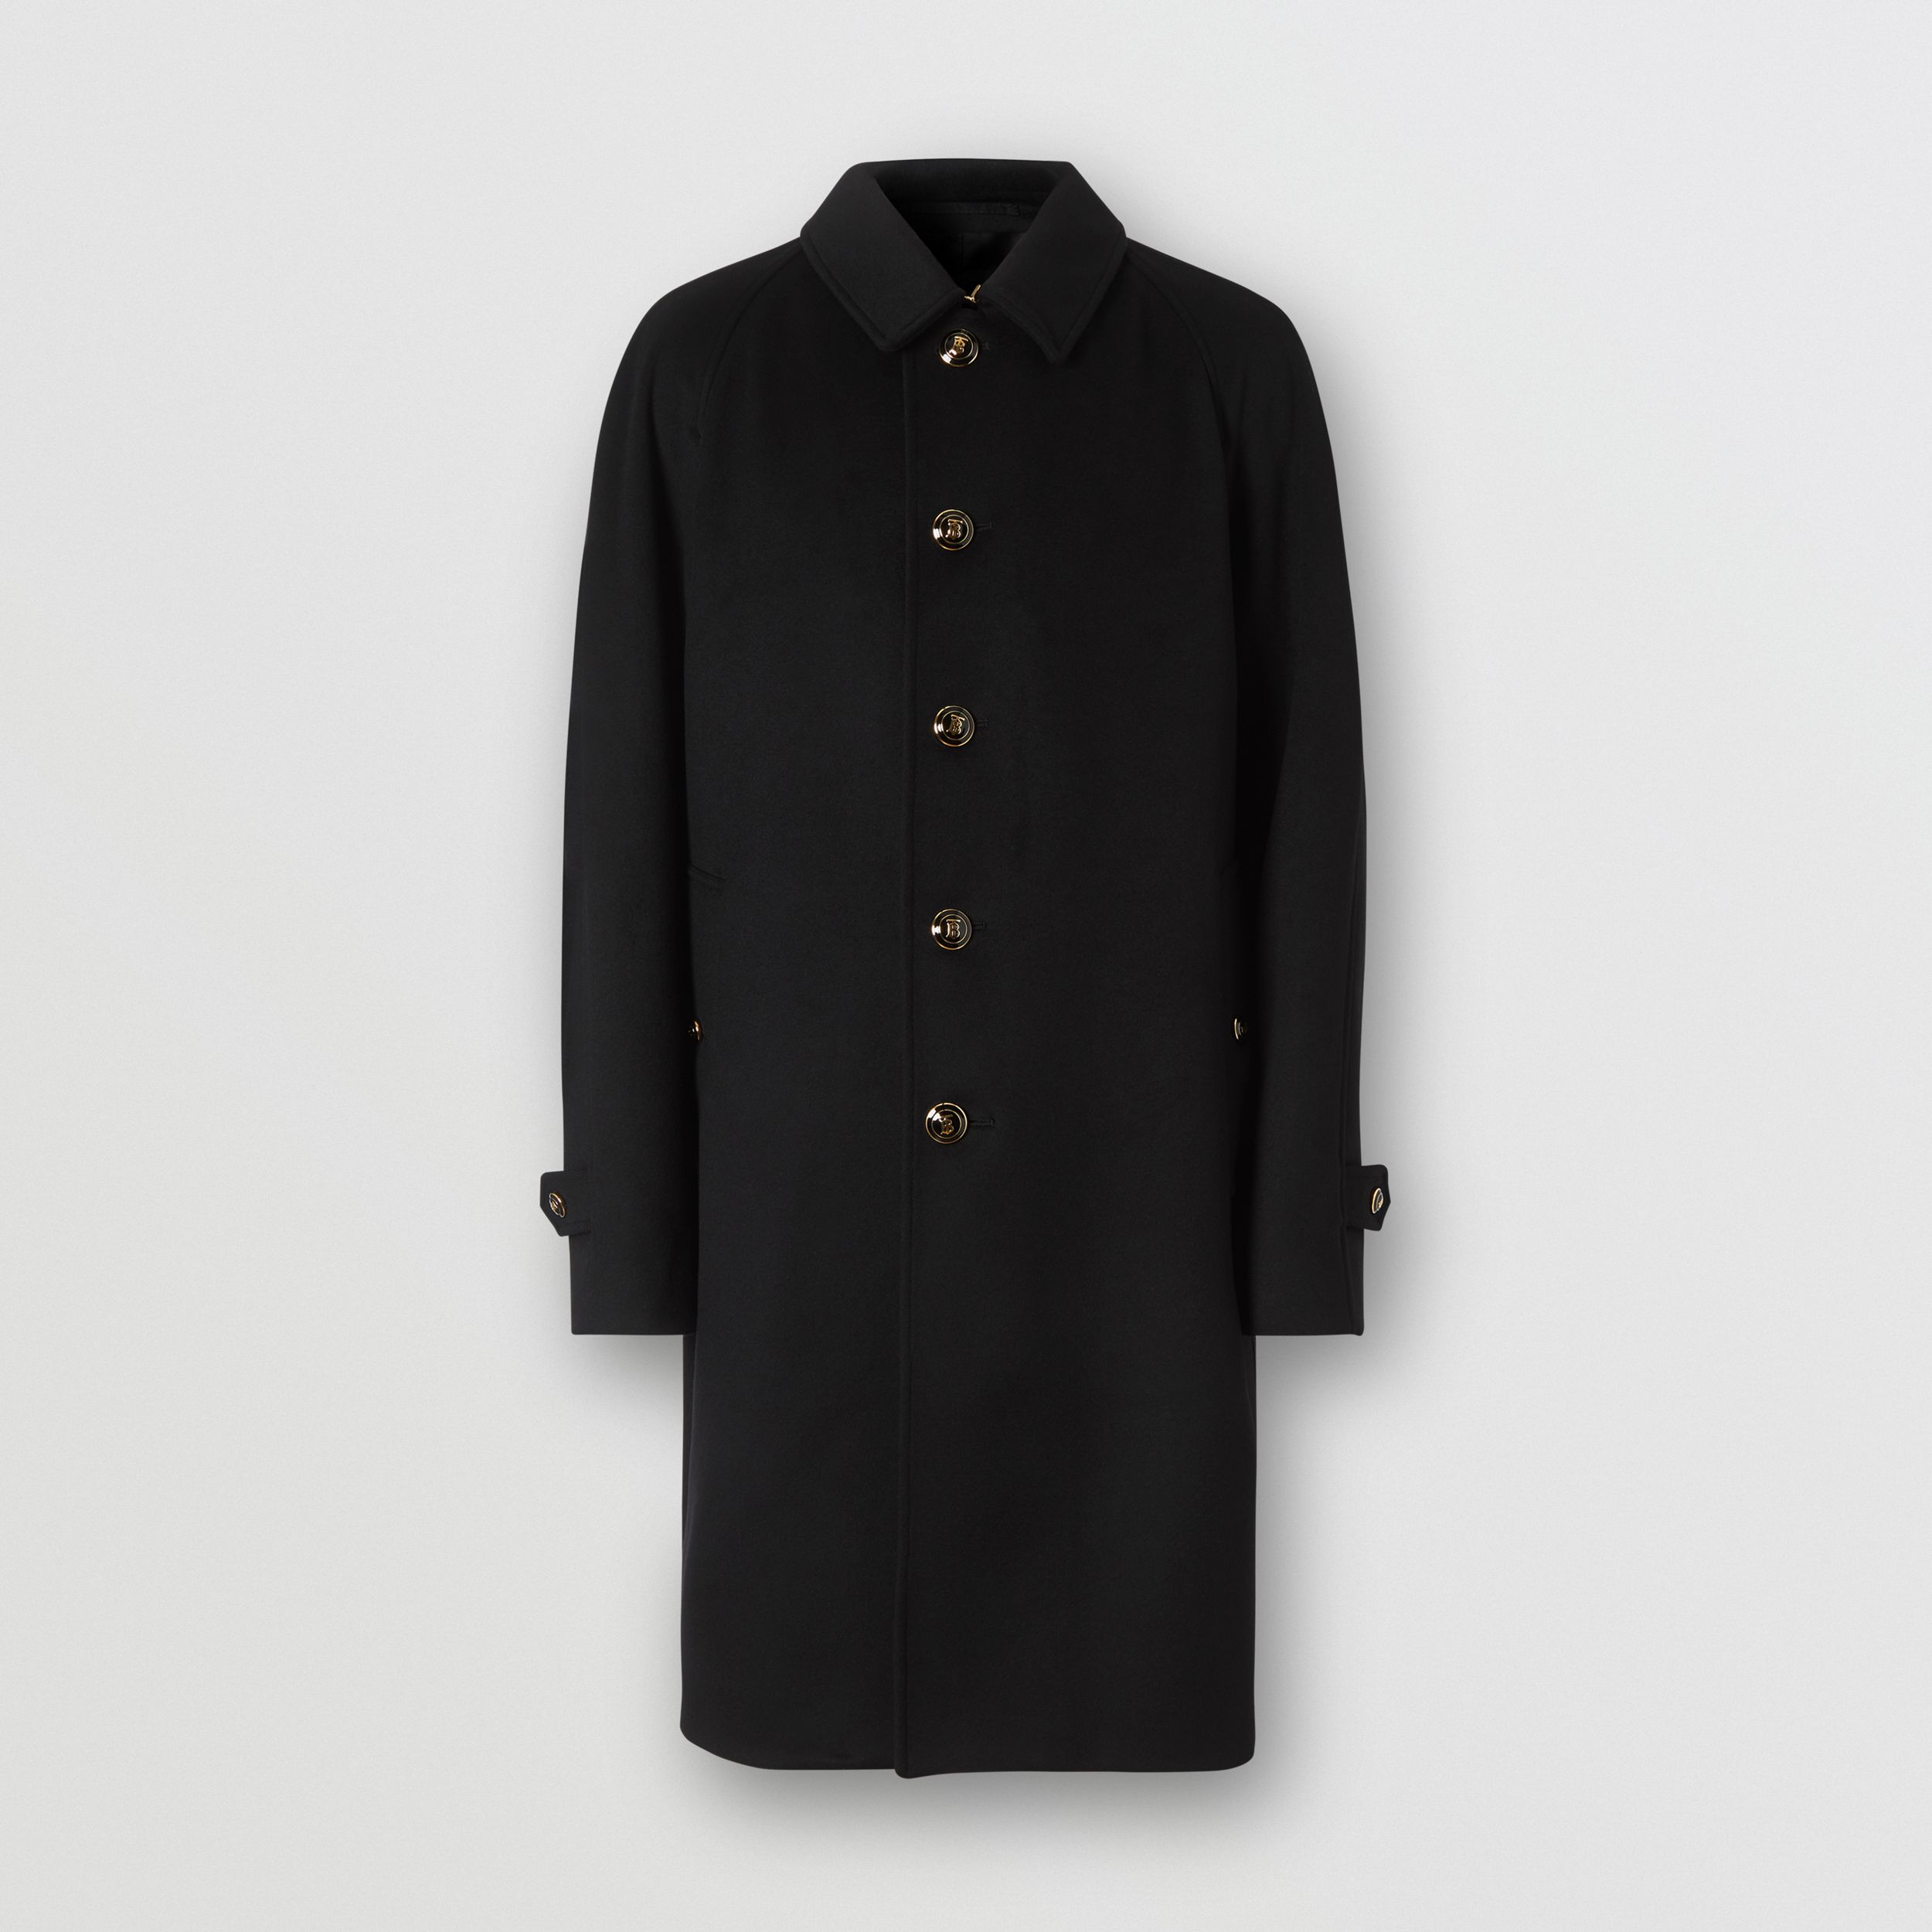 Button Detail Wool Cashmere Car Coat in Black - Men | Burberry - 4